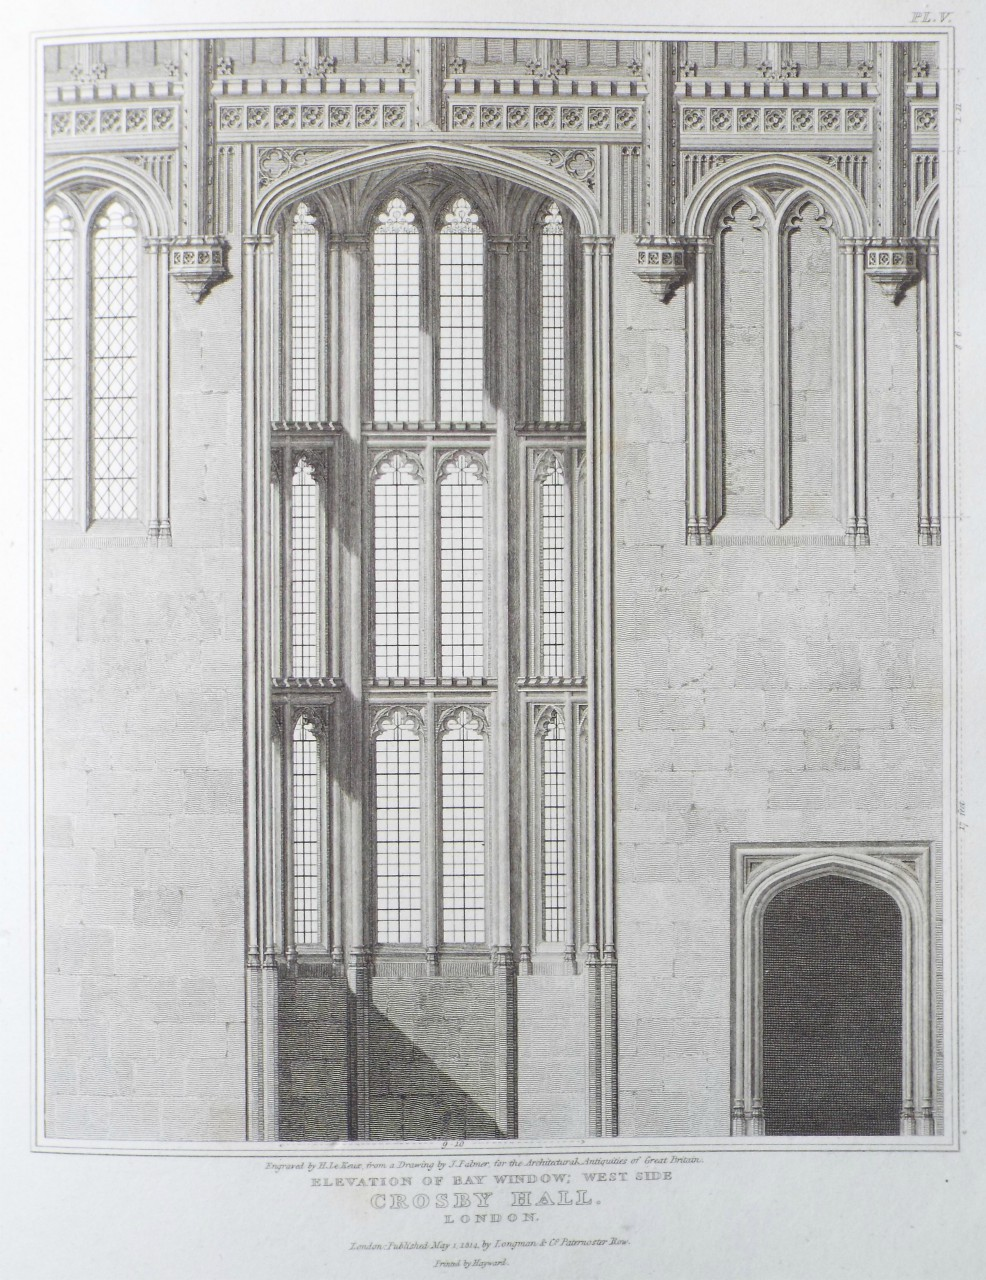 Print - Elevation of Bay Window: West Side Crosby Hall, London. - Le